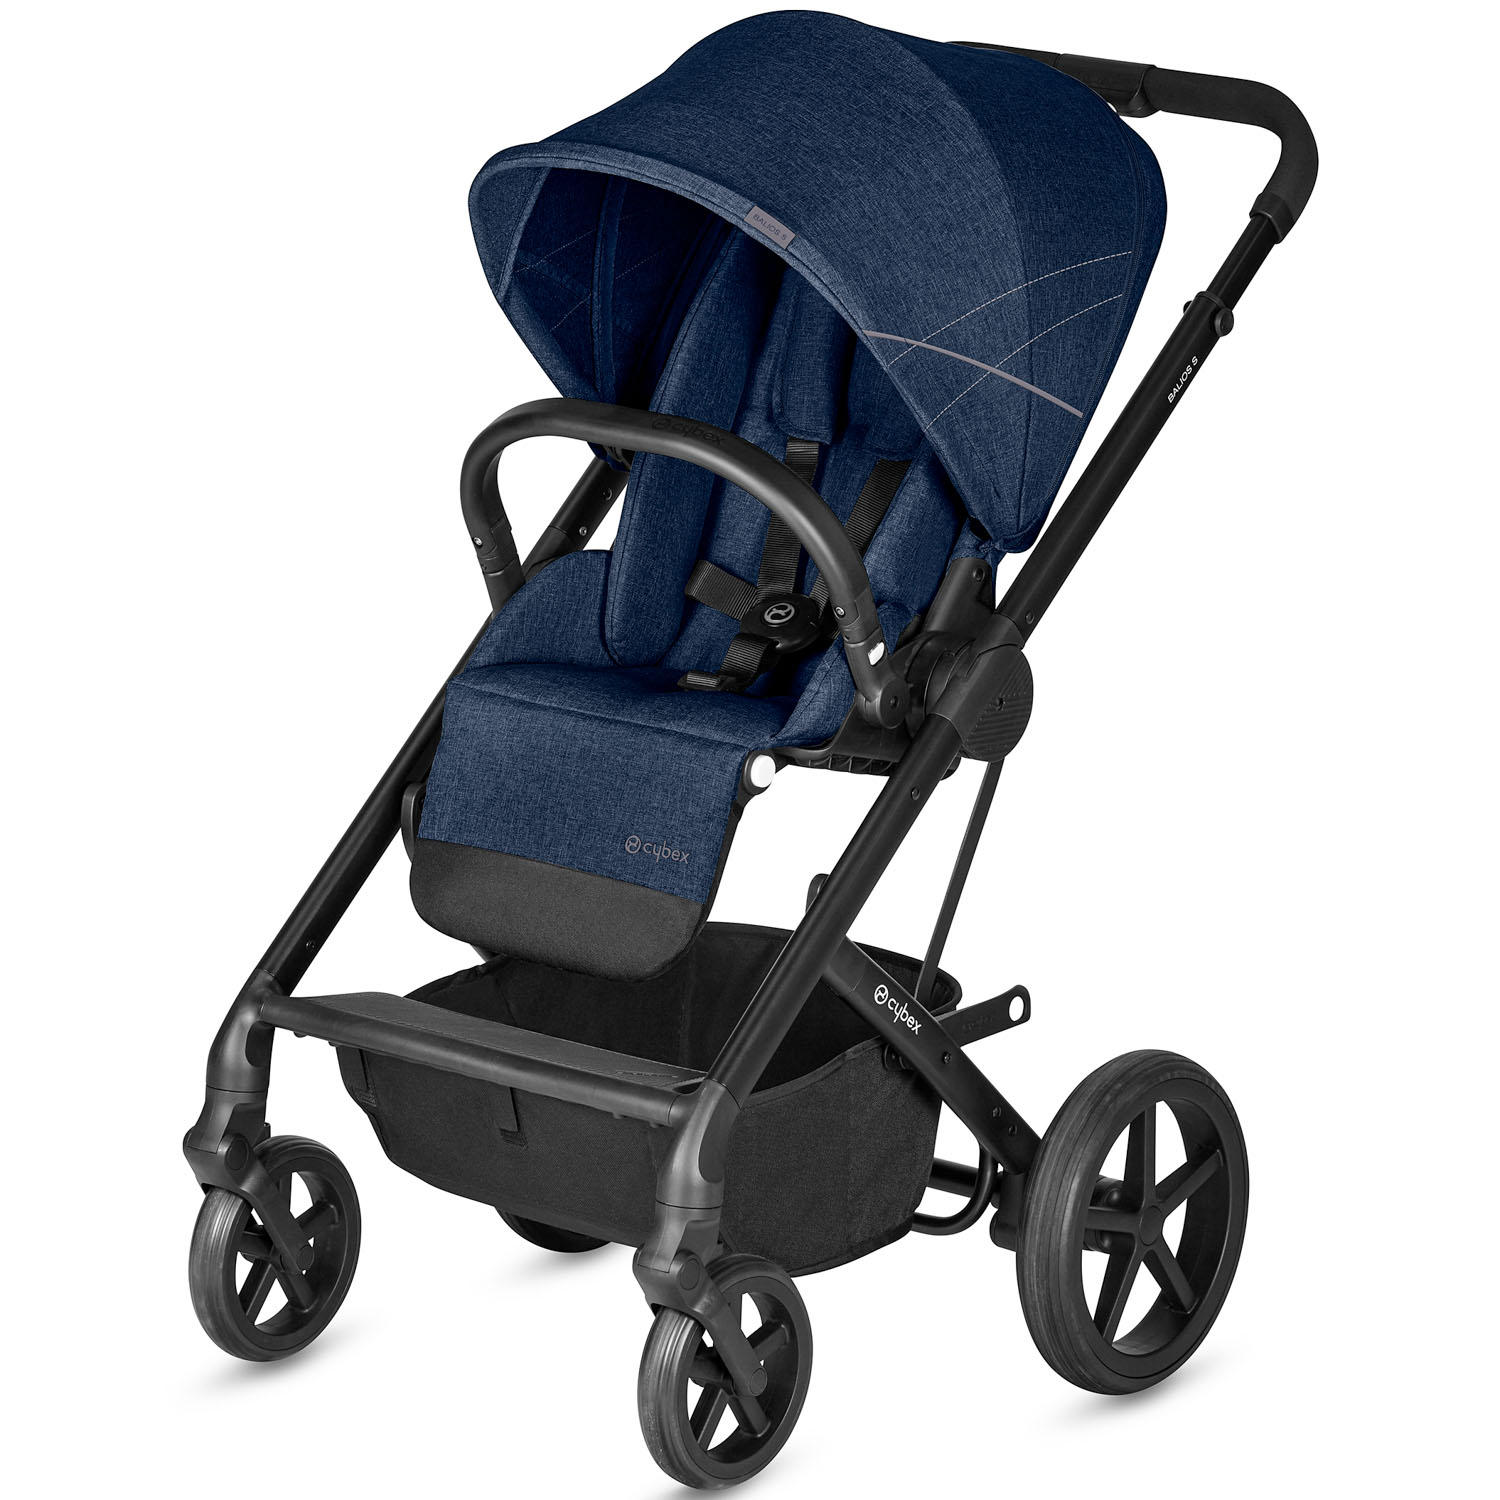 CYBEX Balios S Baby Stroller with Rain Cover